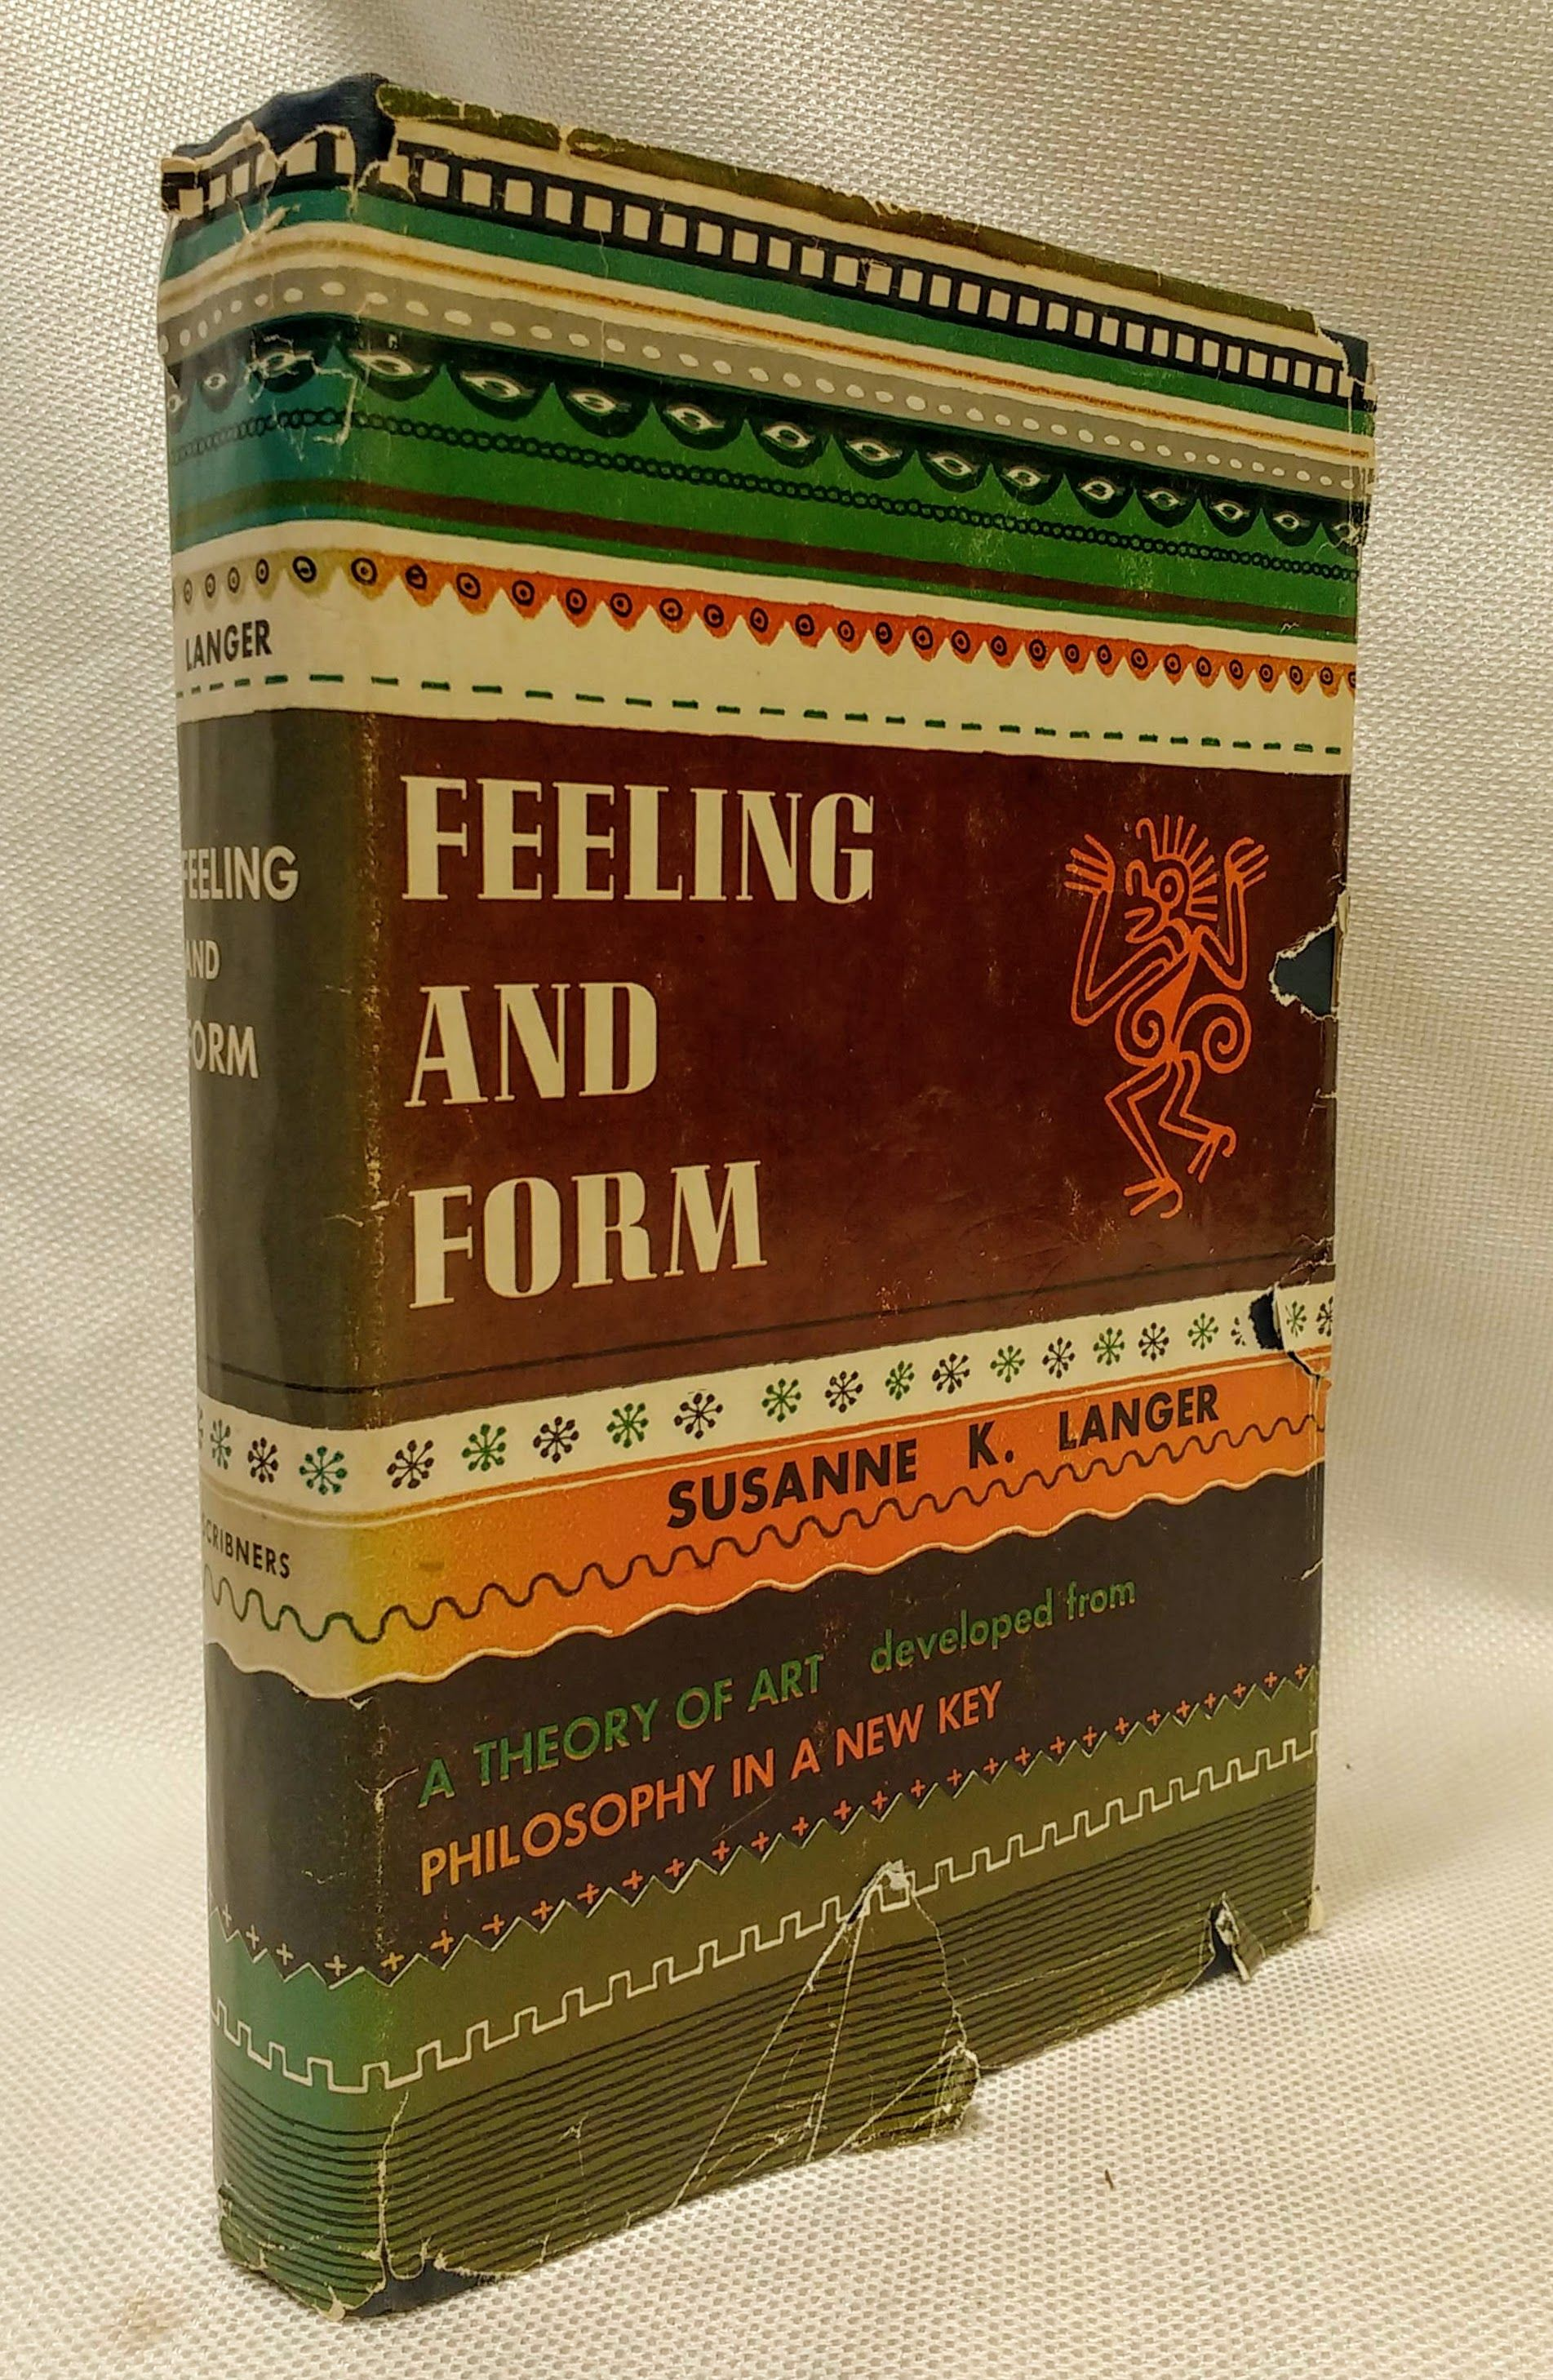 Feeling and Form: A Theory of Art Developed from Philosophy in a New Key, Susanne Katherina Langer